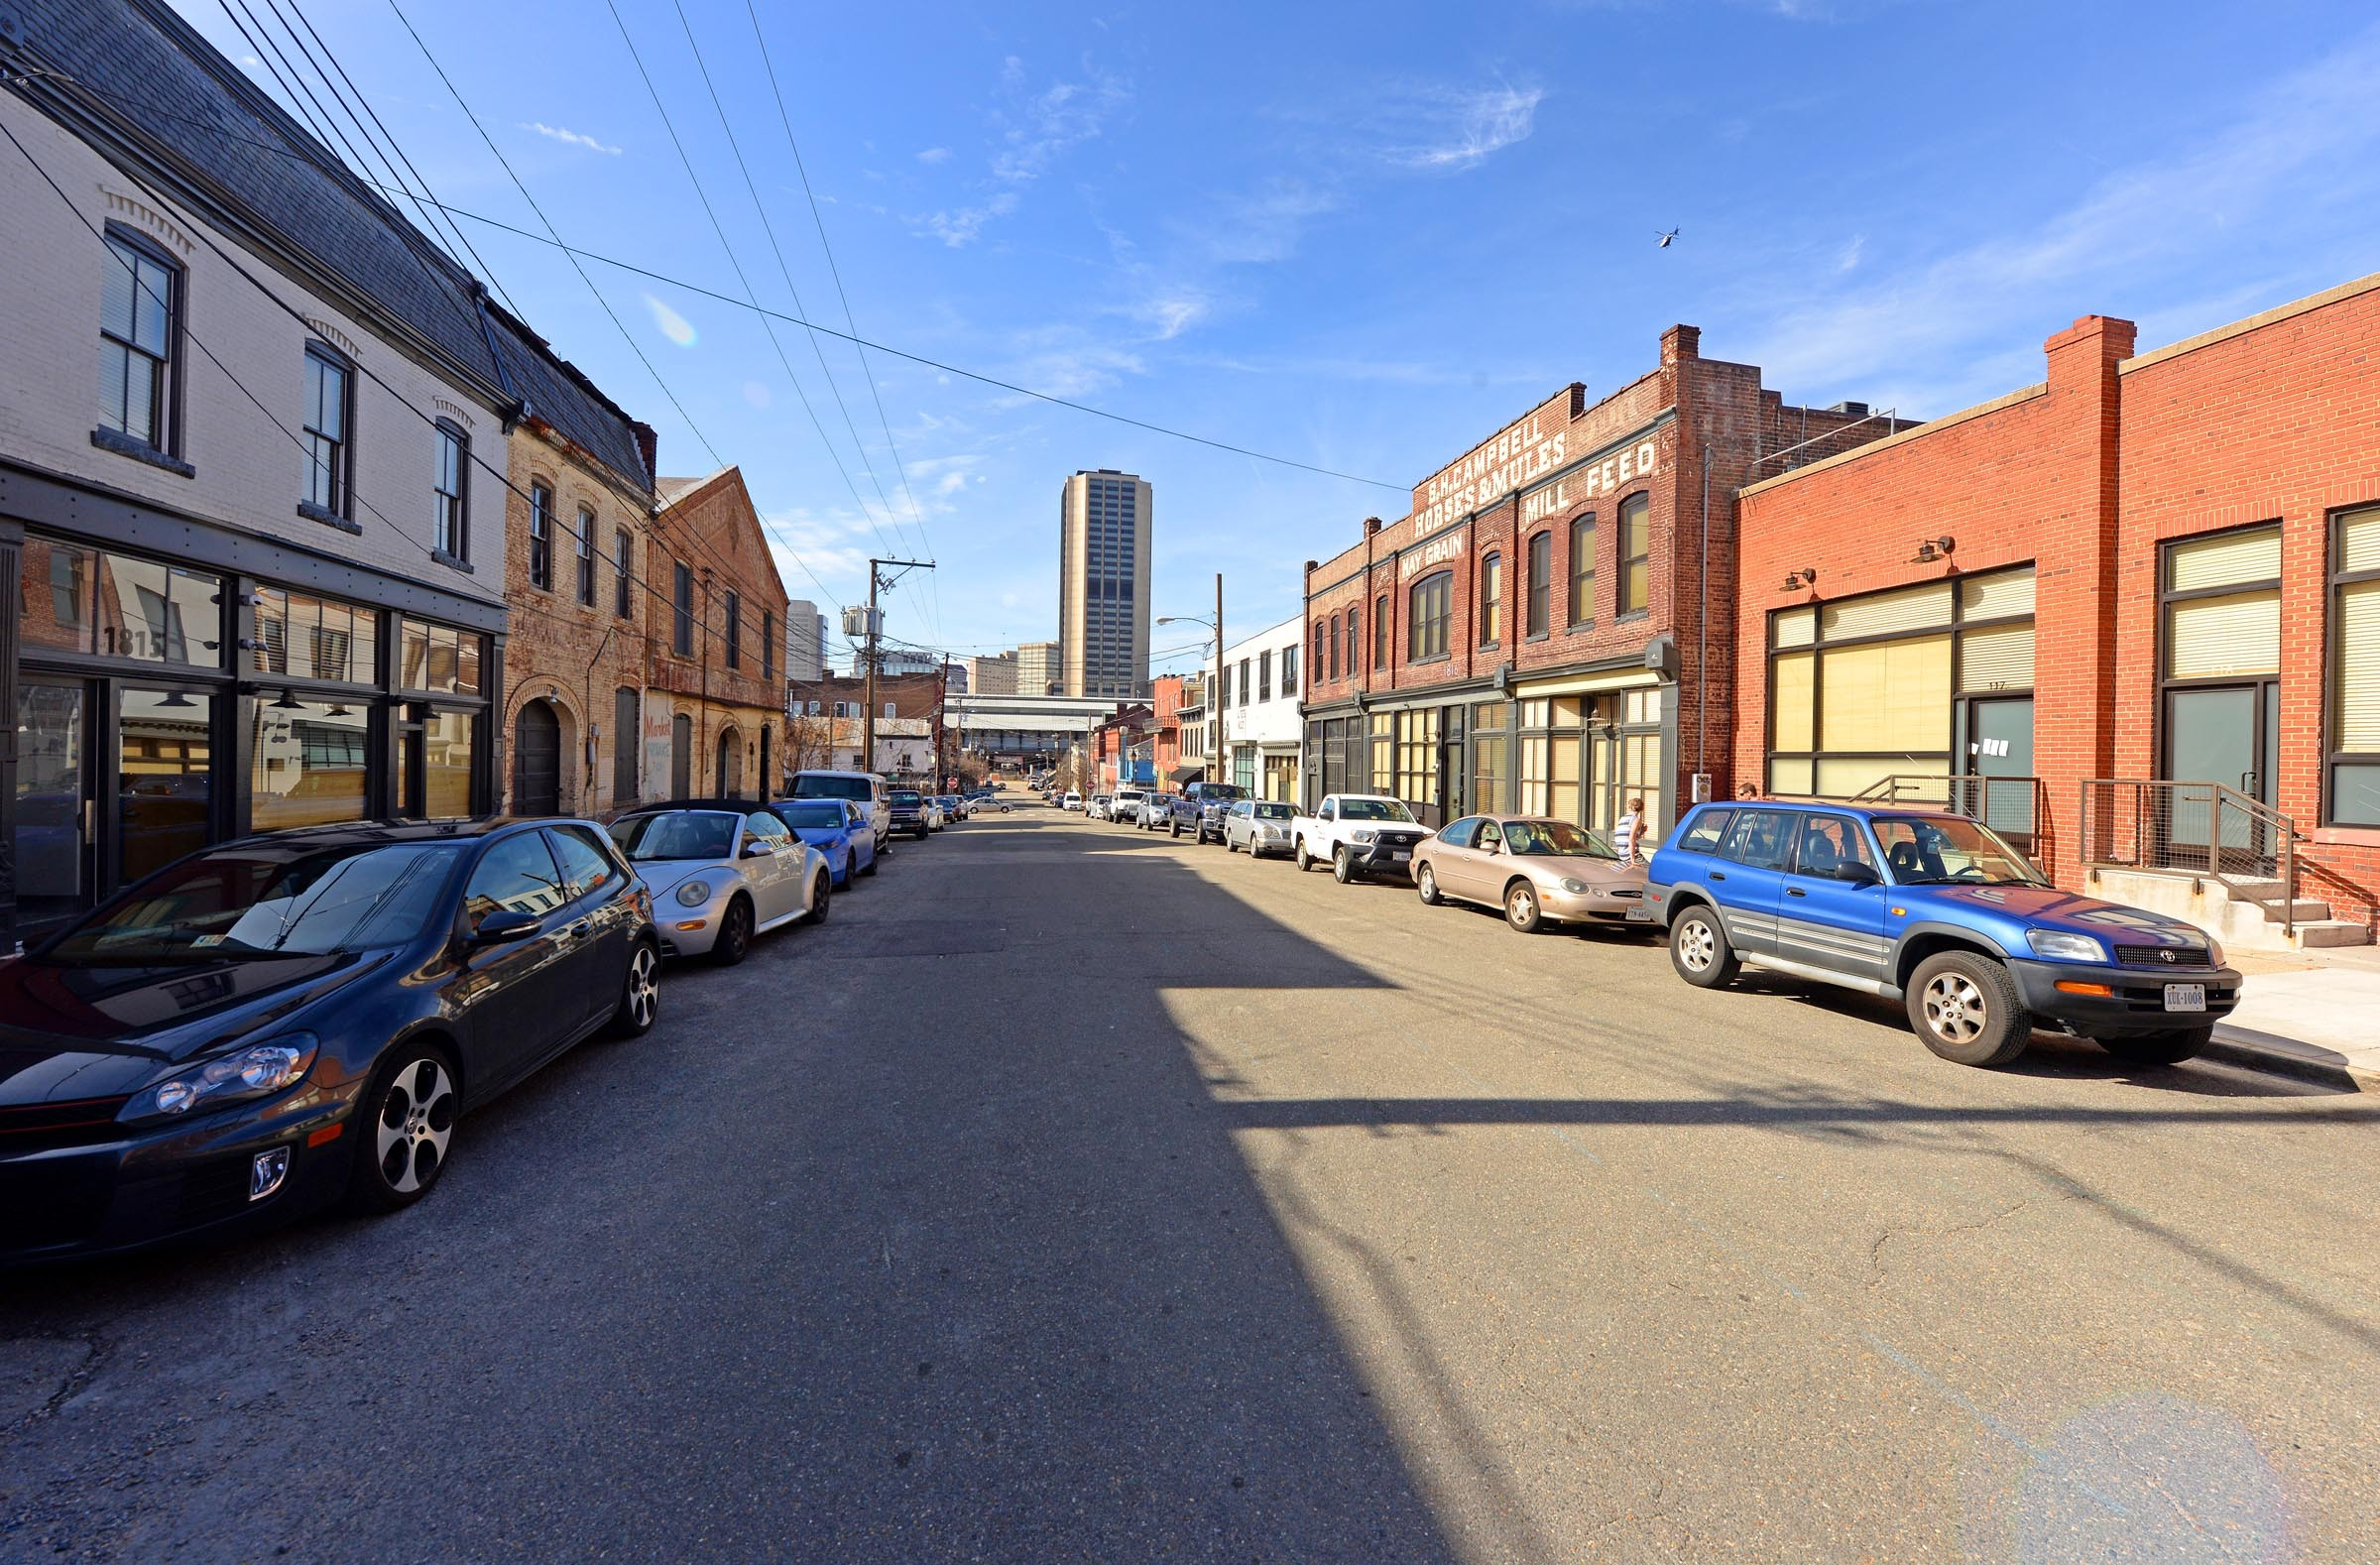 The view in Shockoe Bottom on East Franklin Street looking east toward the high rise Monroe Building. The historic and tight street grid here suggest how the district should be developed. - SCOTT ELMQUIST